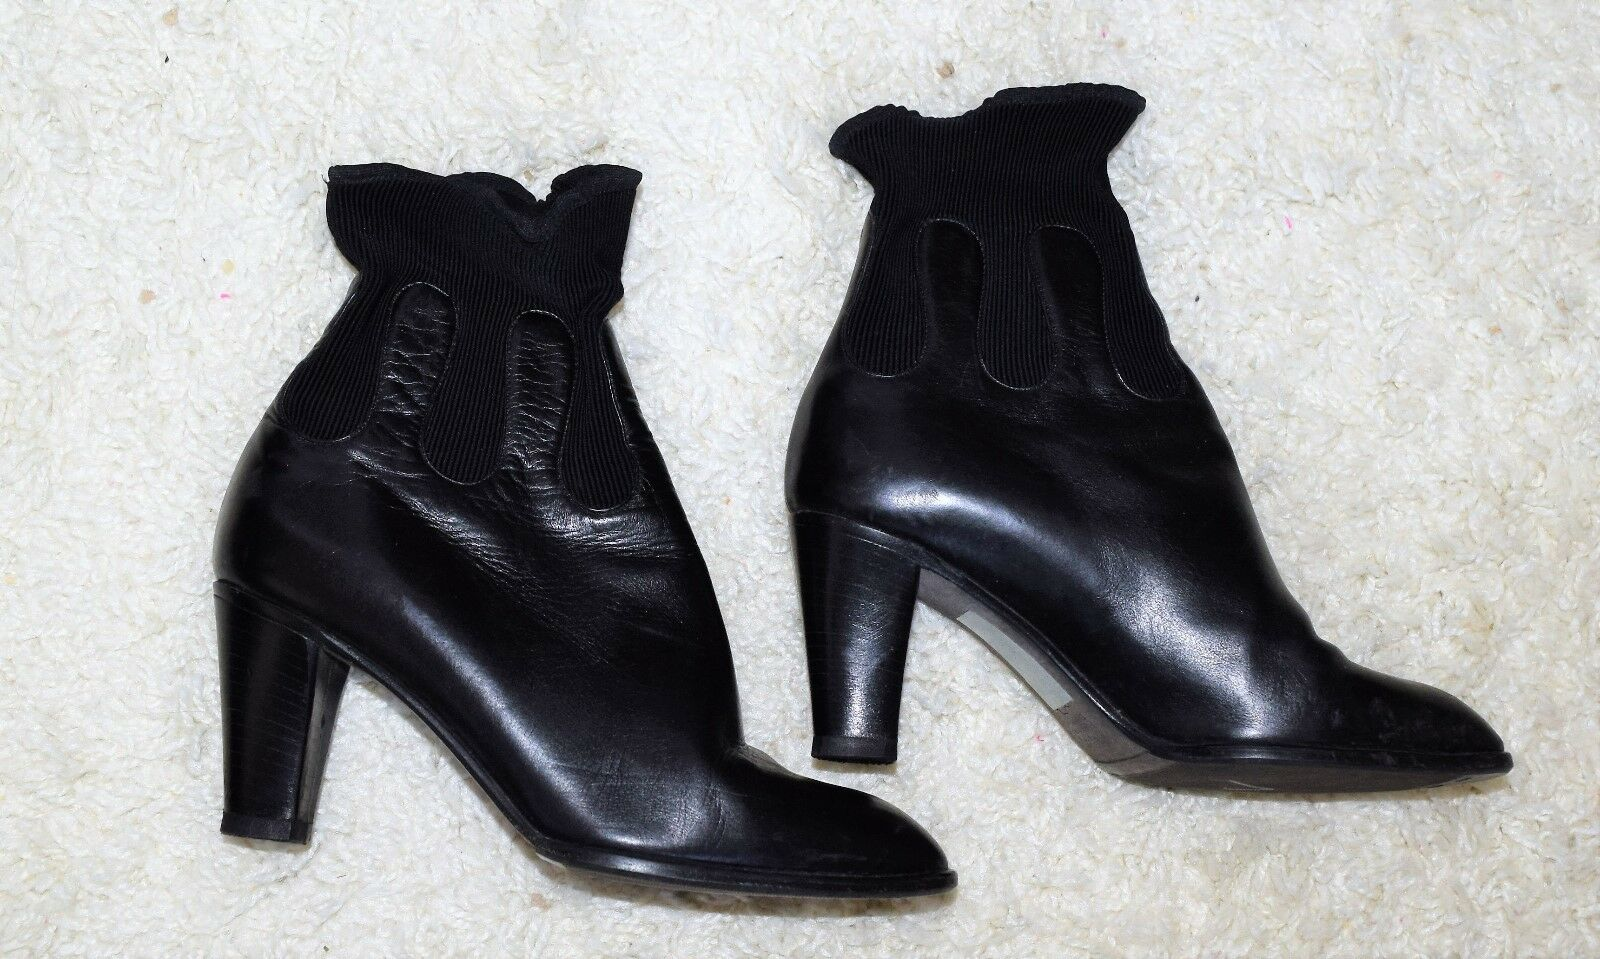 VERO STUDIO SOFIA Black Leather Ankle Boots Made in  Womens Size 36